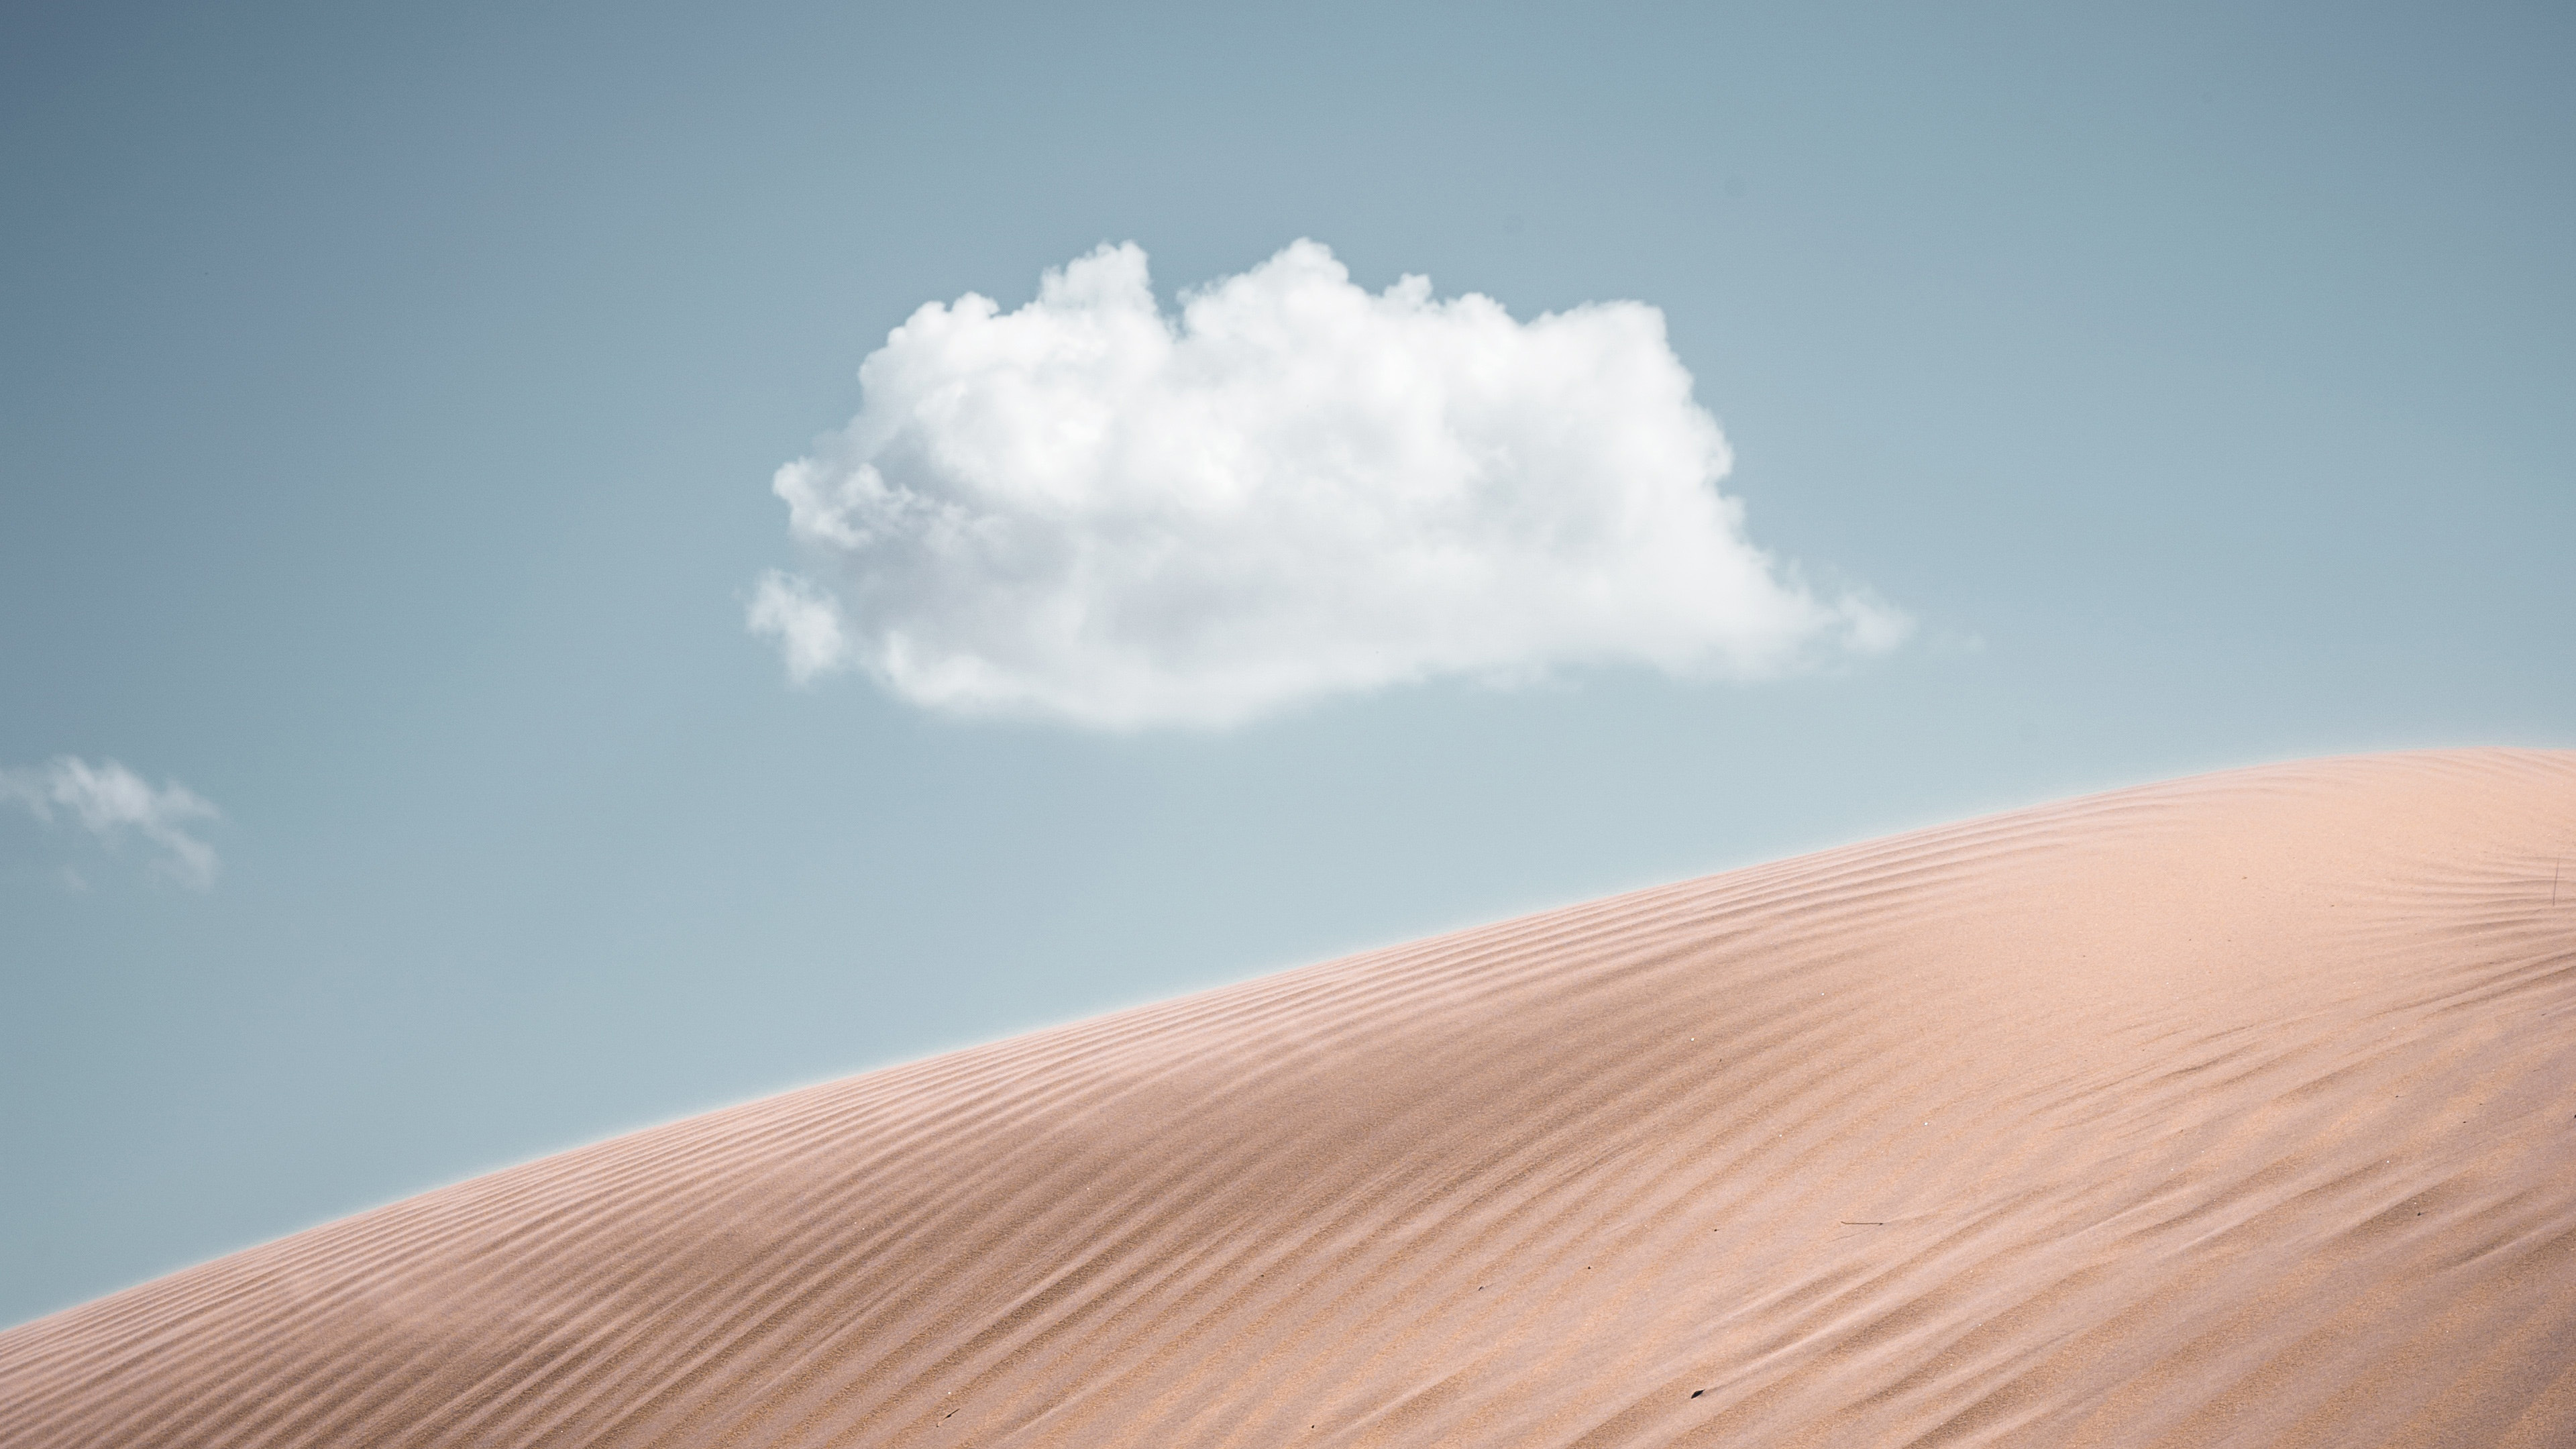 lonely cloud above desert 4k 1540143622 - Lonely Cloud Above Desert 4k - nature wallpapers, hd-wallpapers, desert wallpapers, cloud wallpapers, 4k-wallpapers